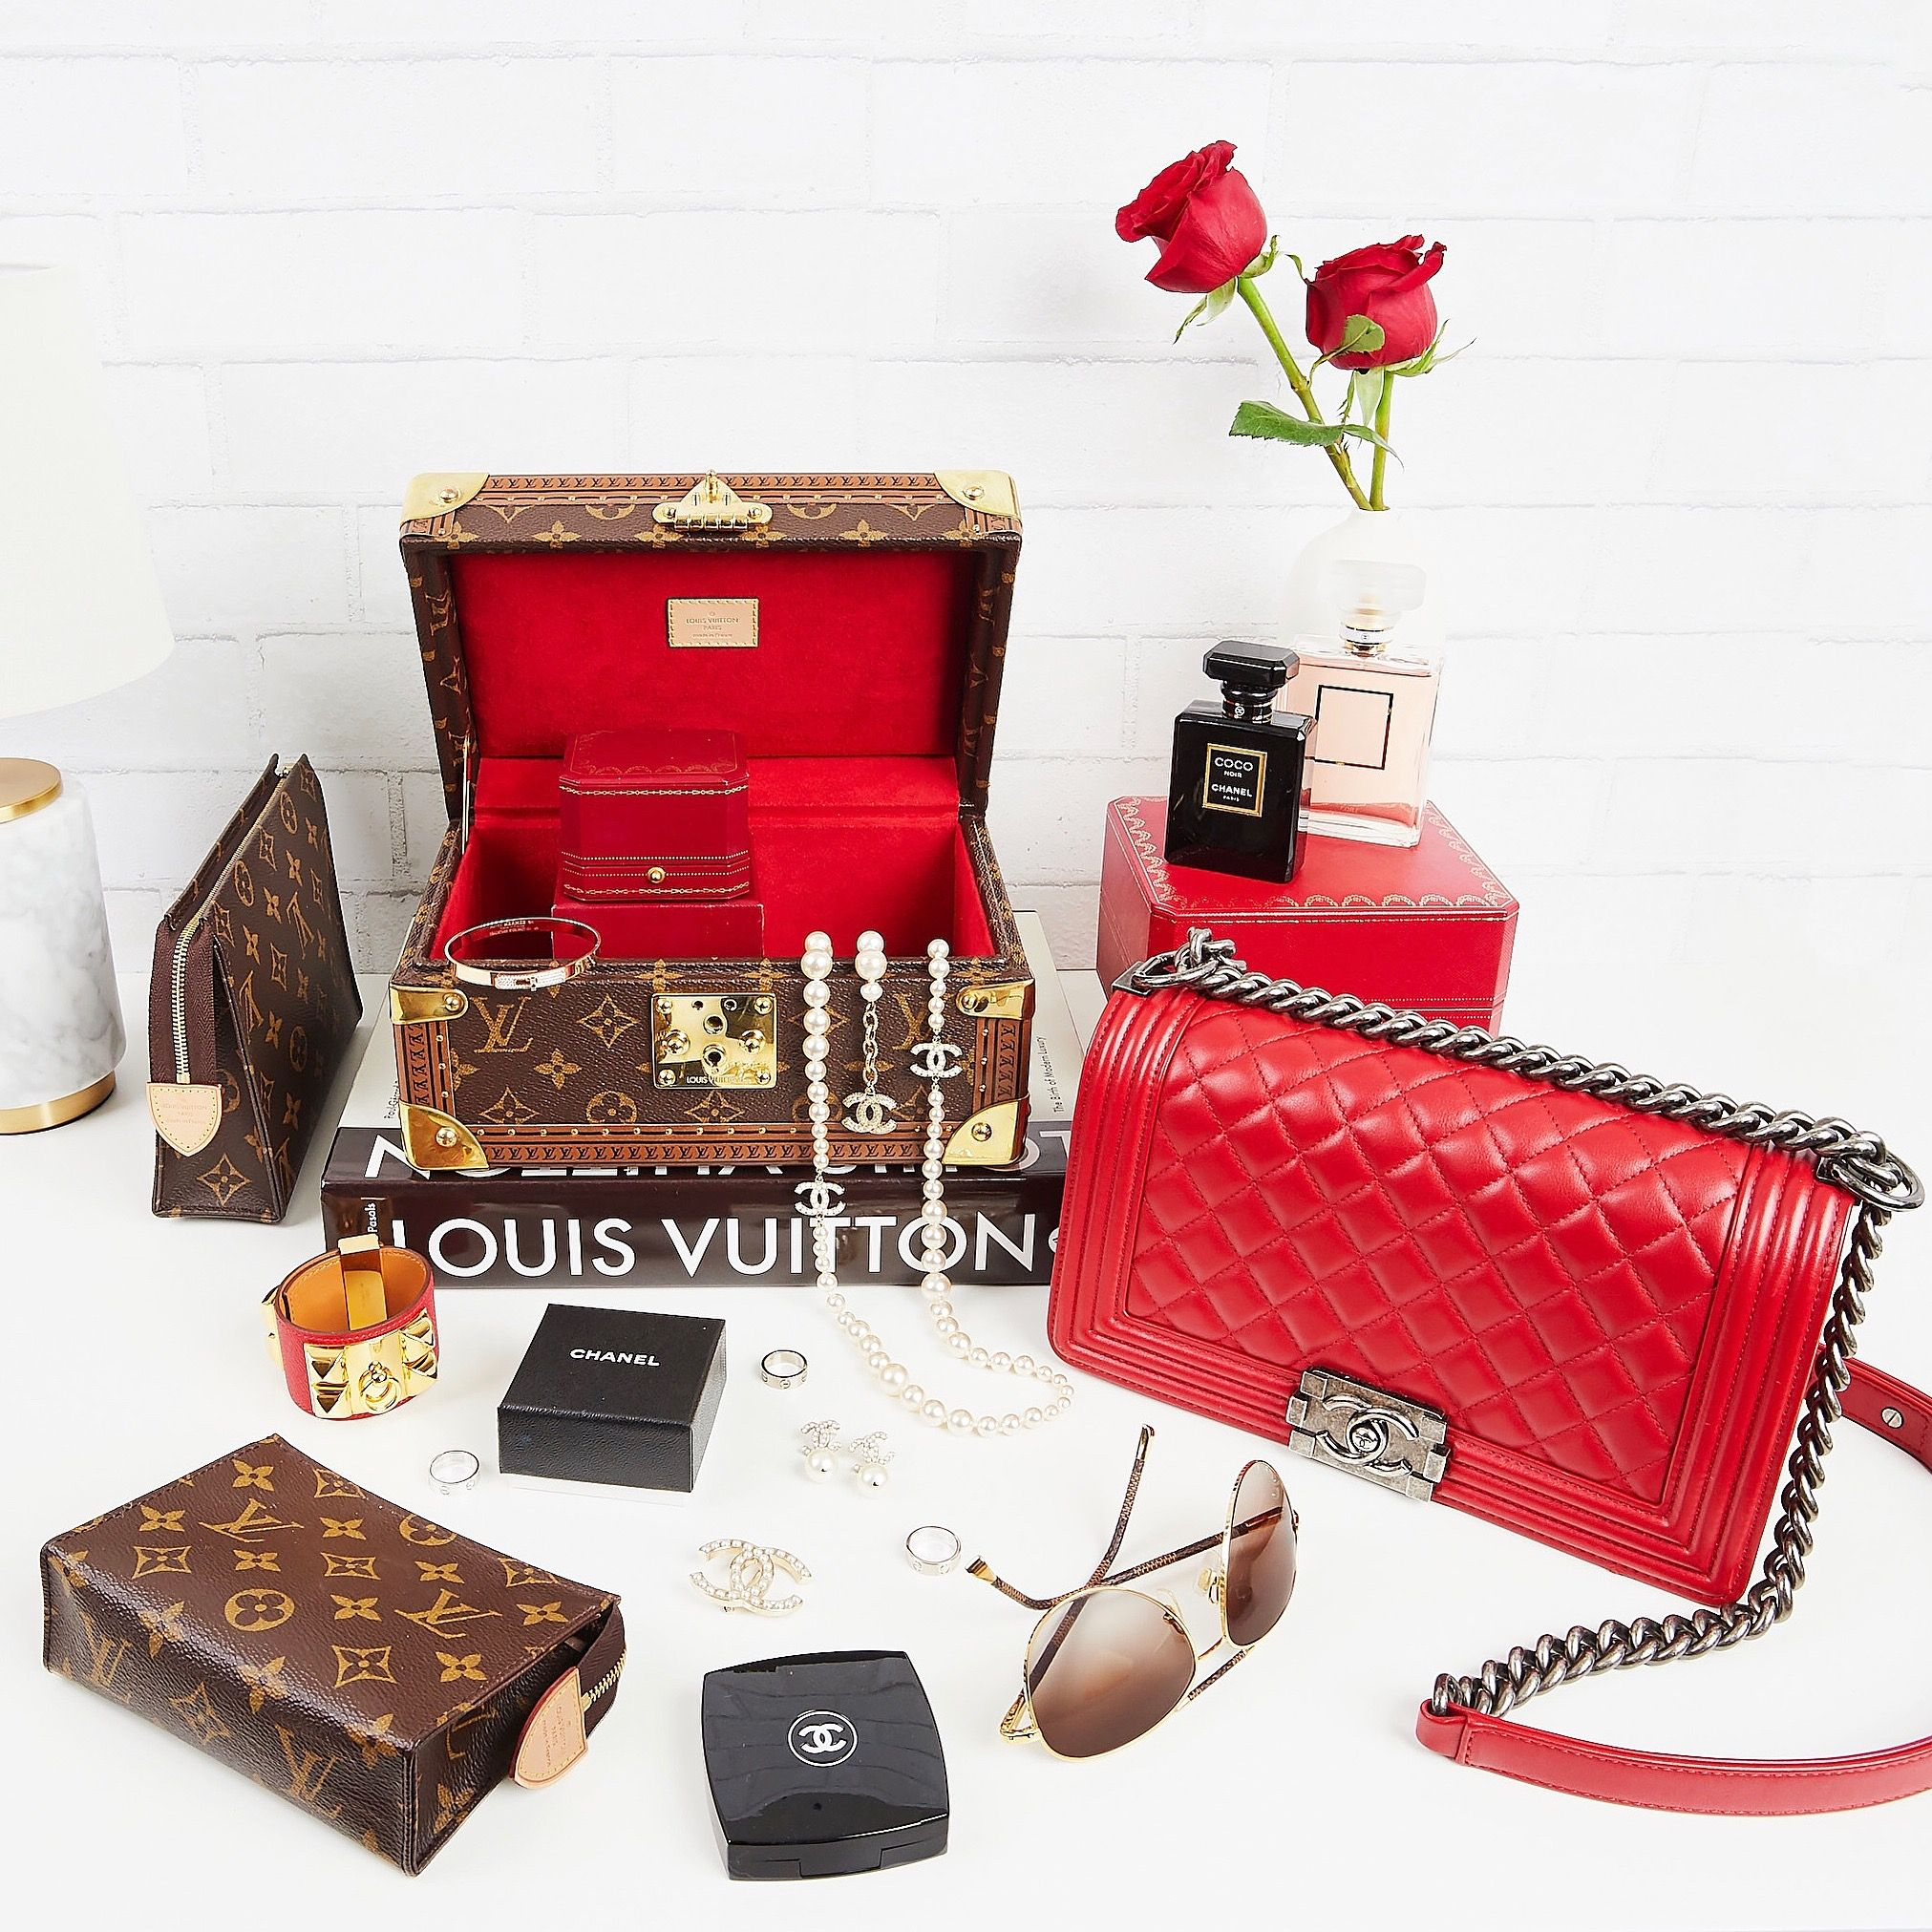 8b354a7f9479 #chanel #bag #louisvuitton #cosmeticbag #roses #chanelperfume #hermes  #hermescdc #louisvuittonbook #chanelnecklace #chaneljewelry #sunglasses  #cartier